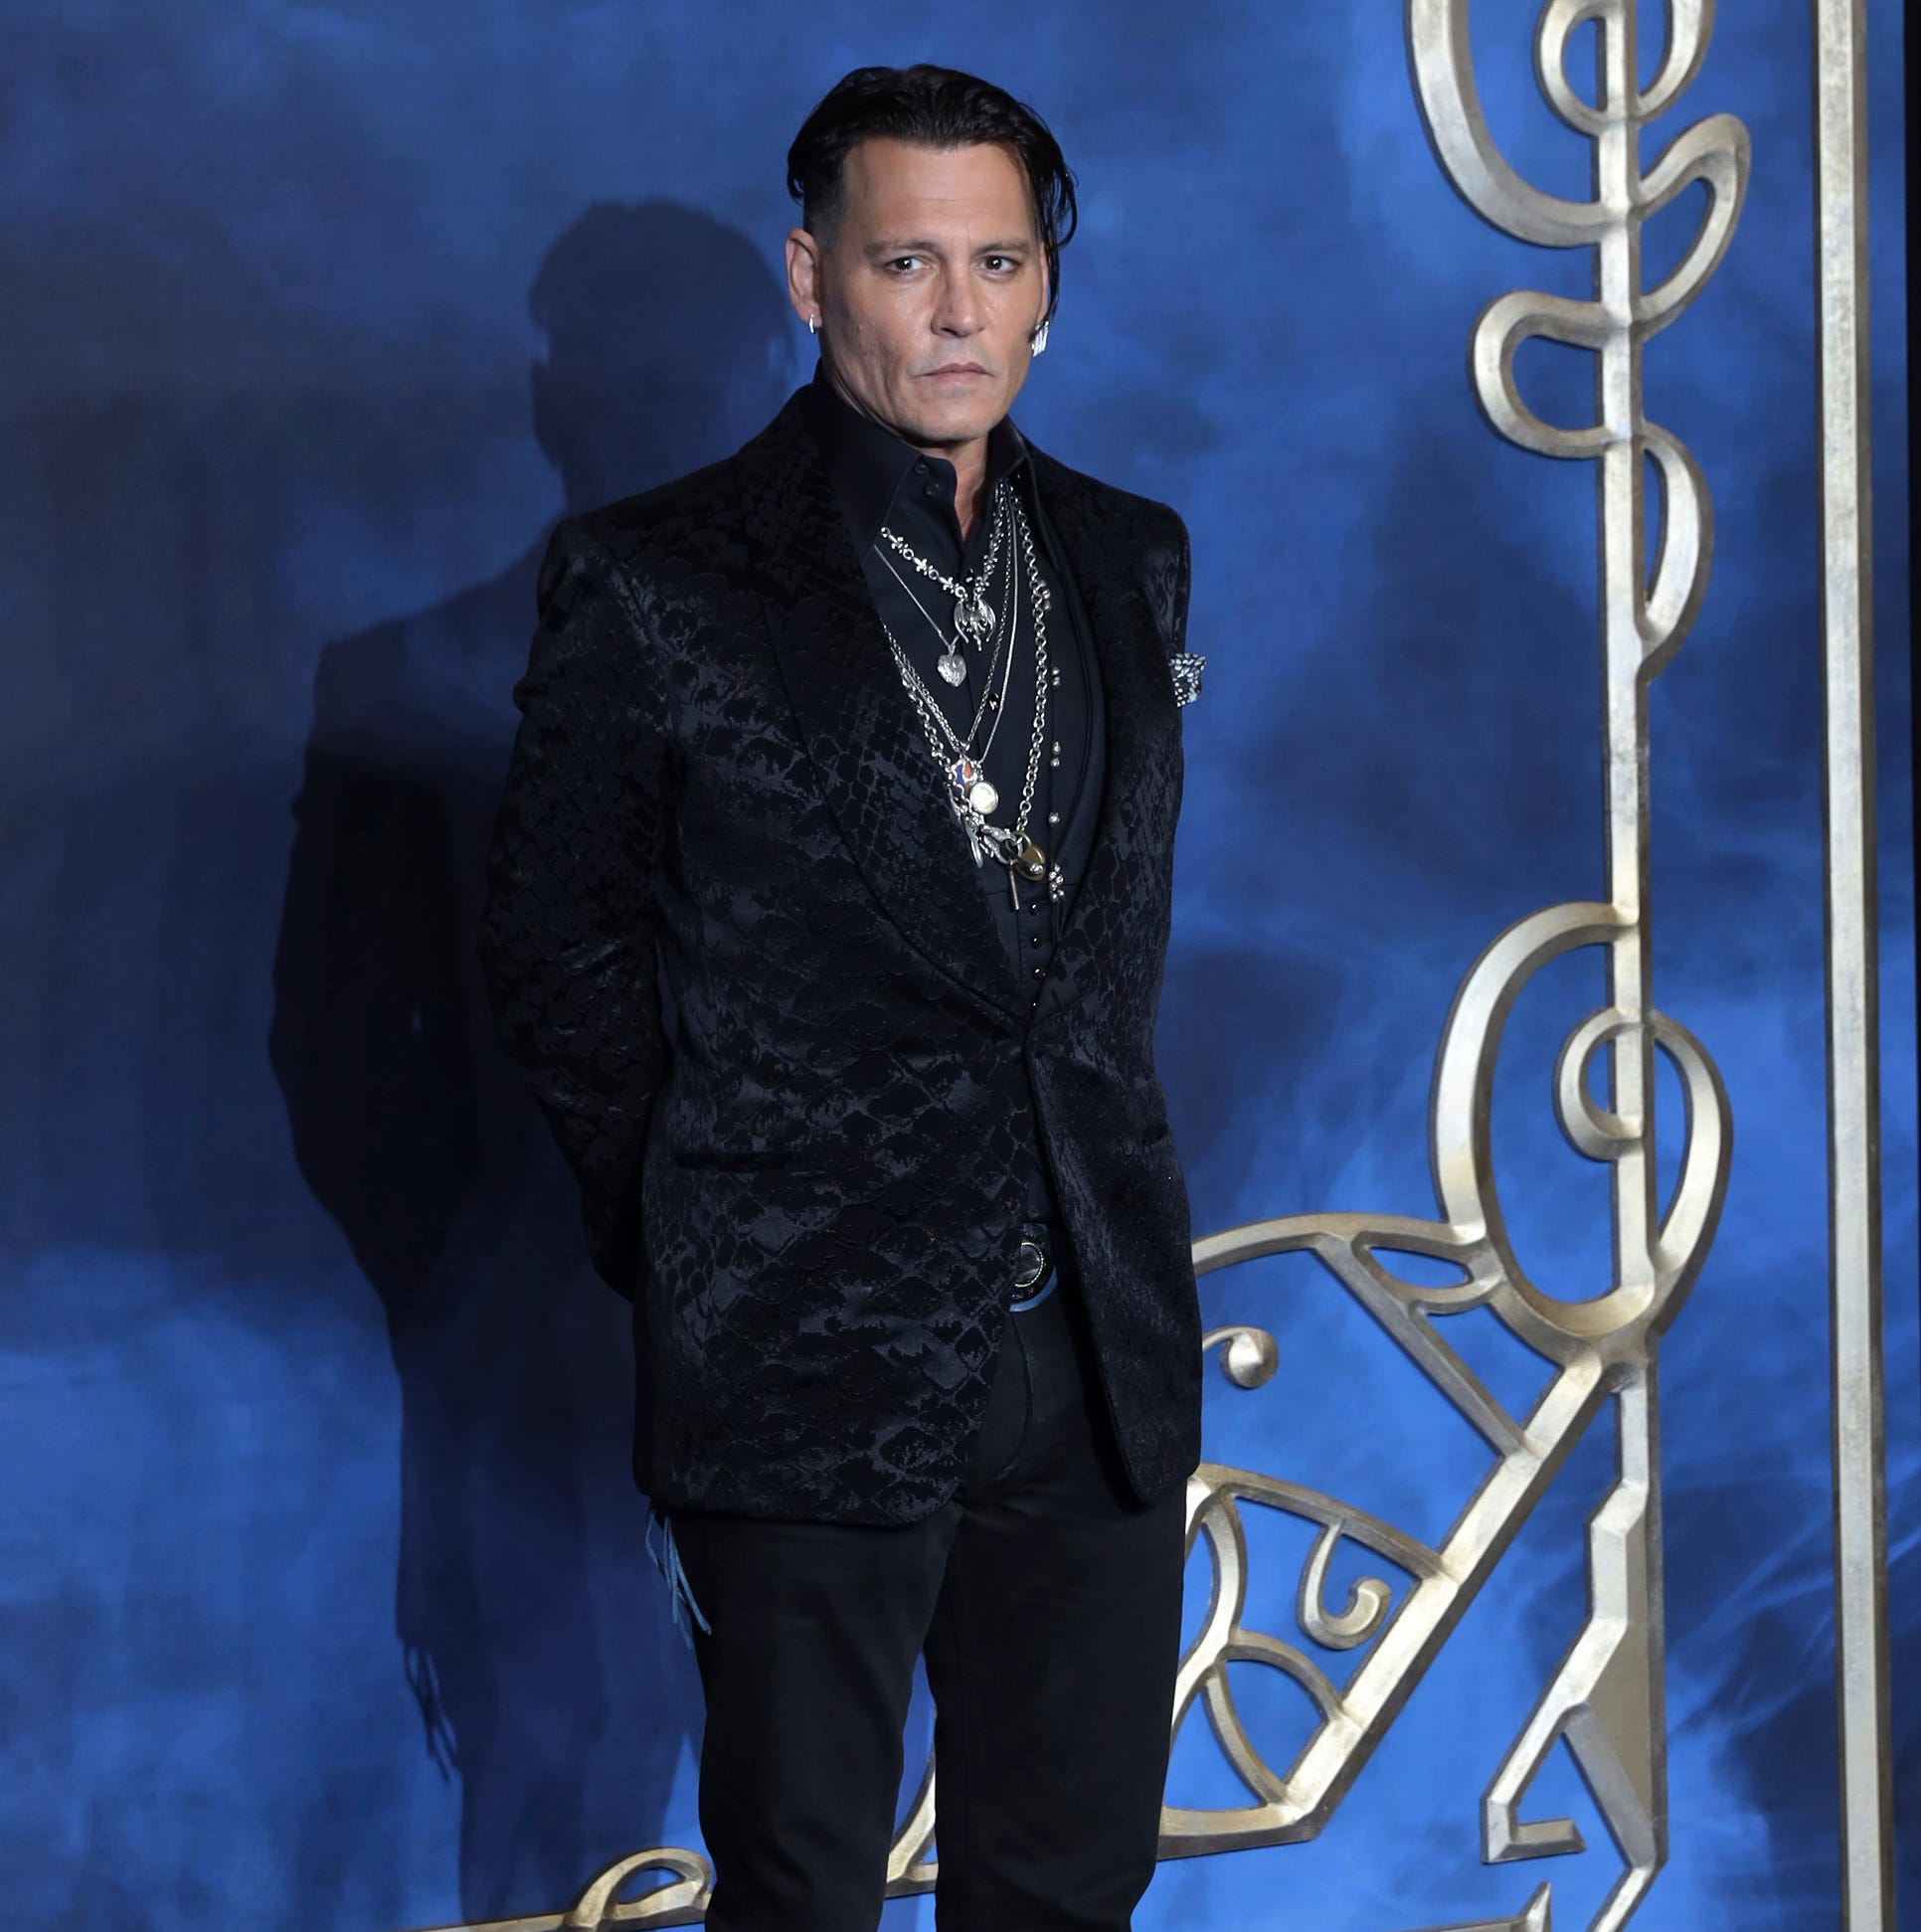 Cry-Baby, is that you? Depp (finally) walks 'Fantastic Beasts' carpet